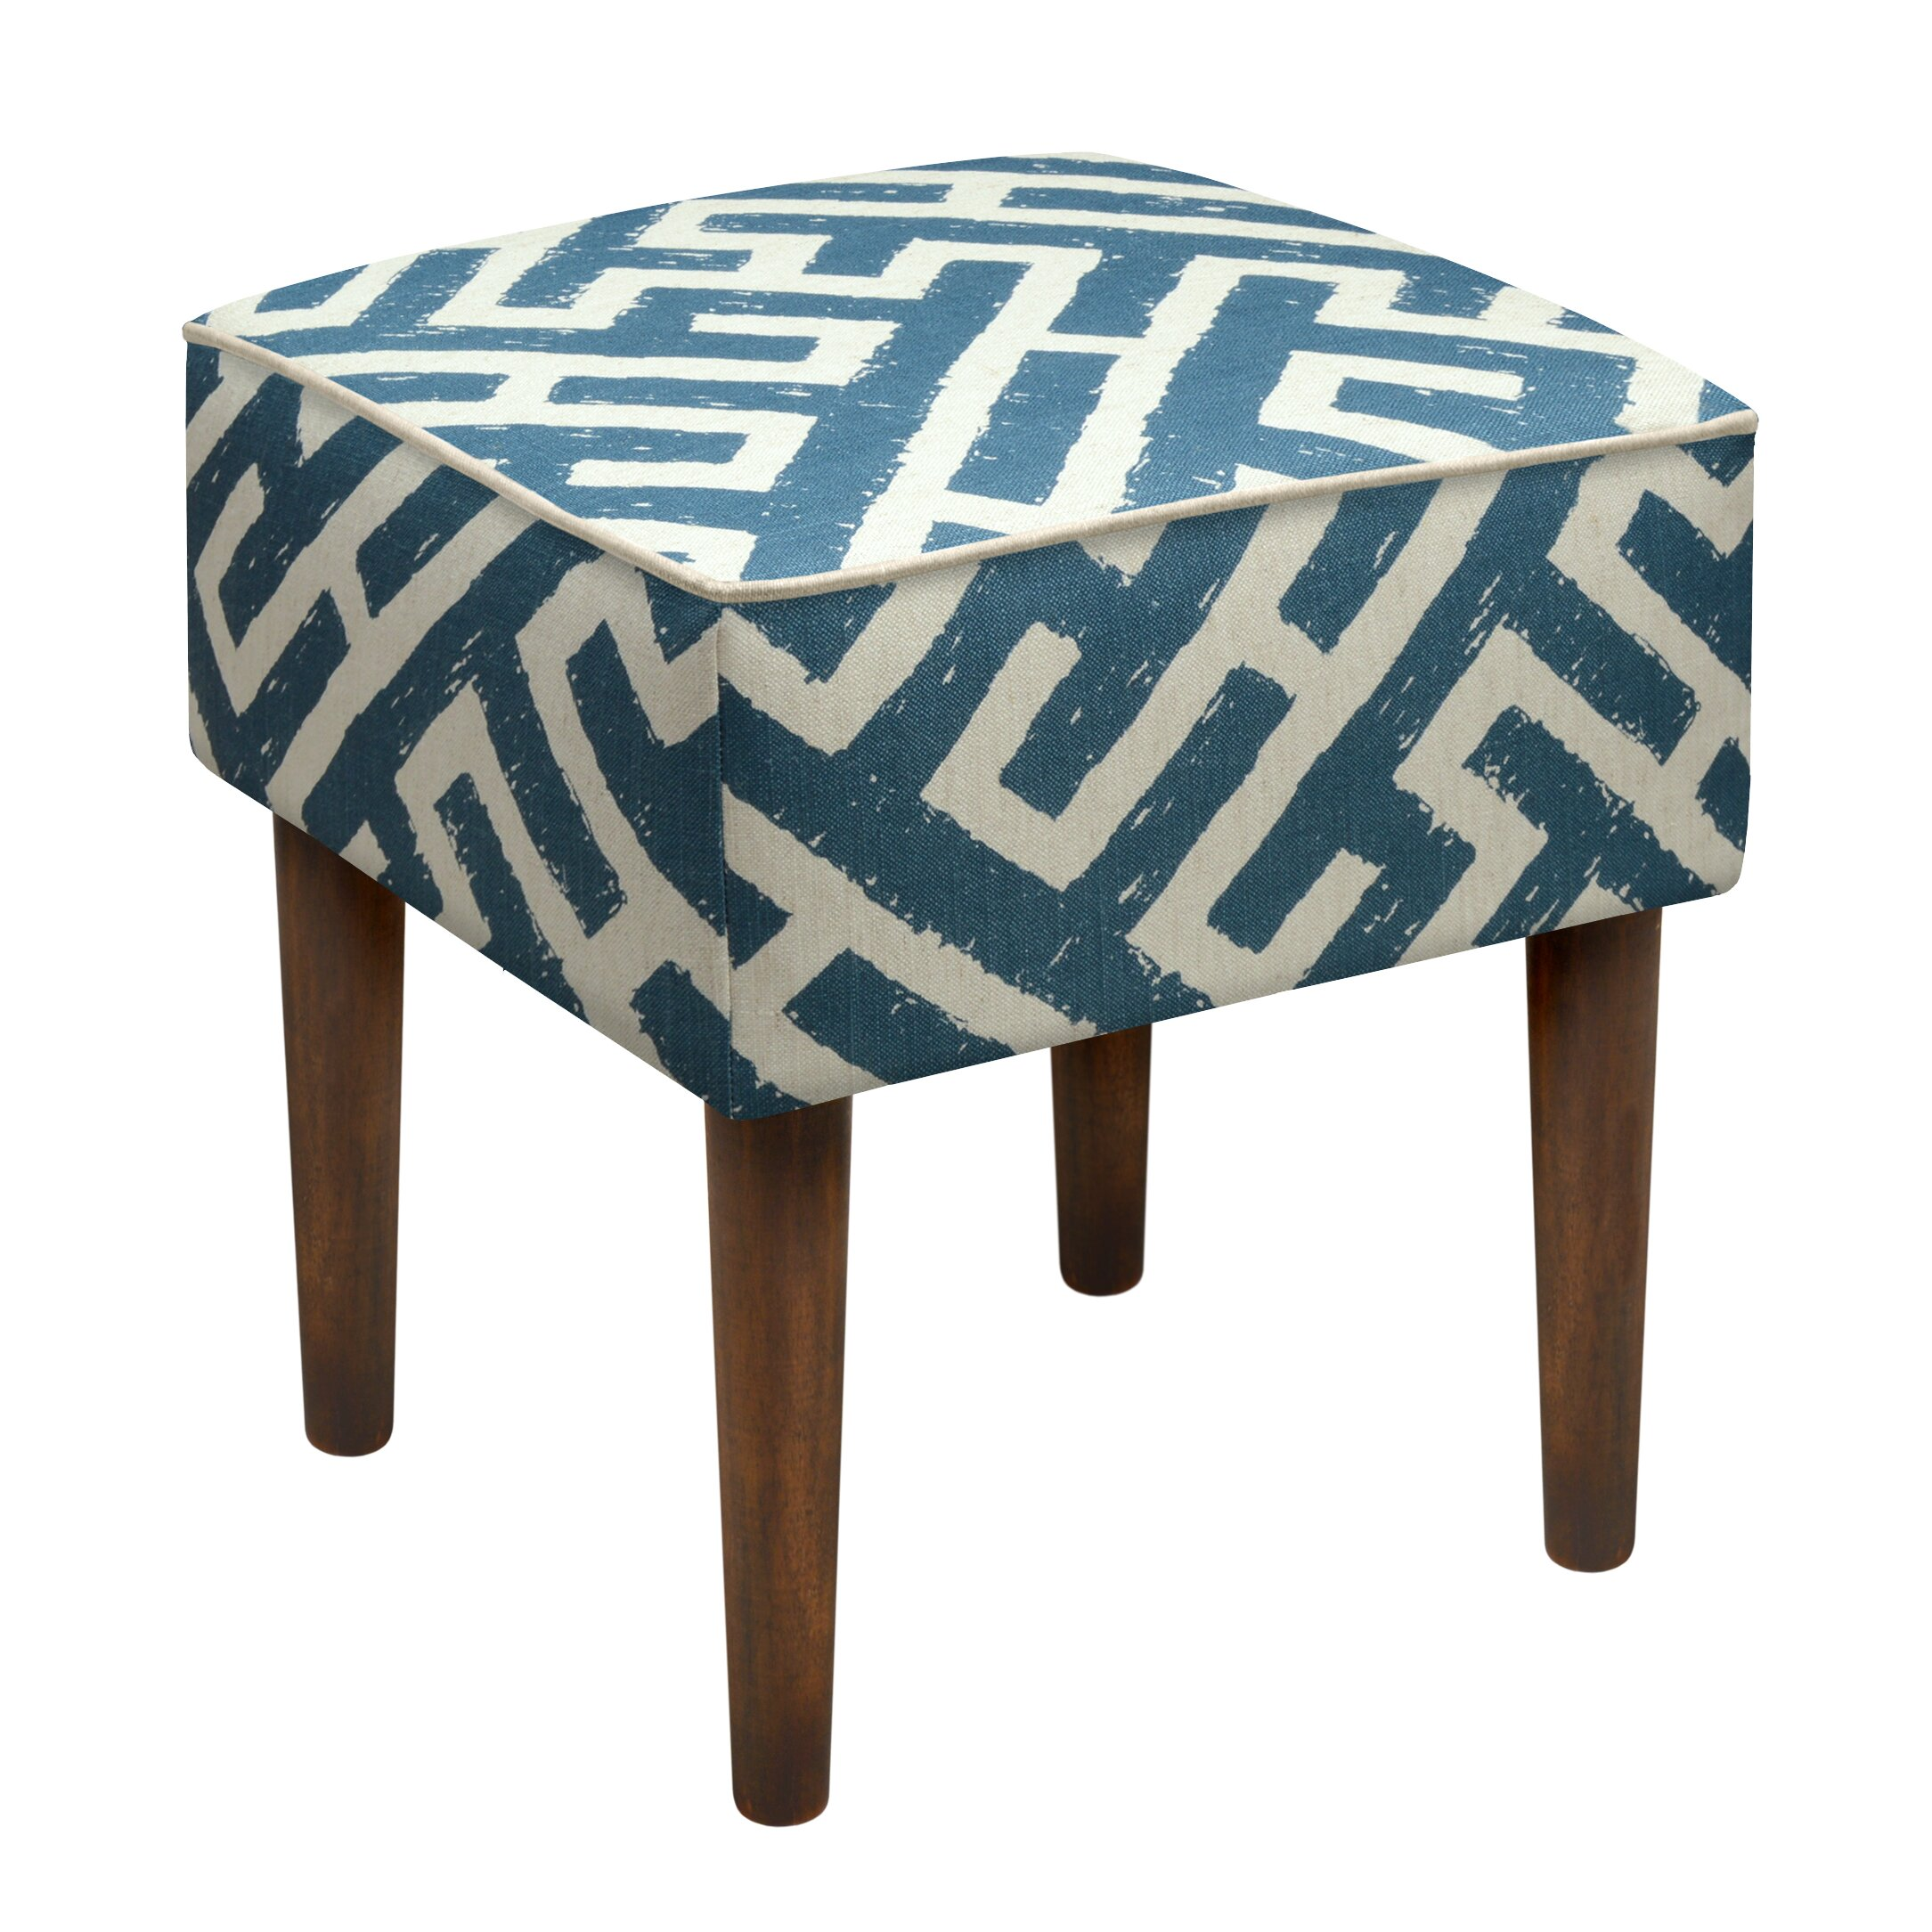 123 Creations Lattice Upholstered Vanity Stool Amp Reviews